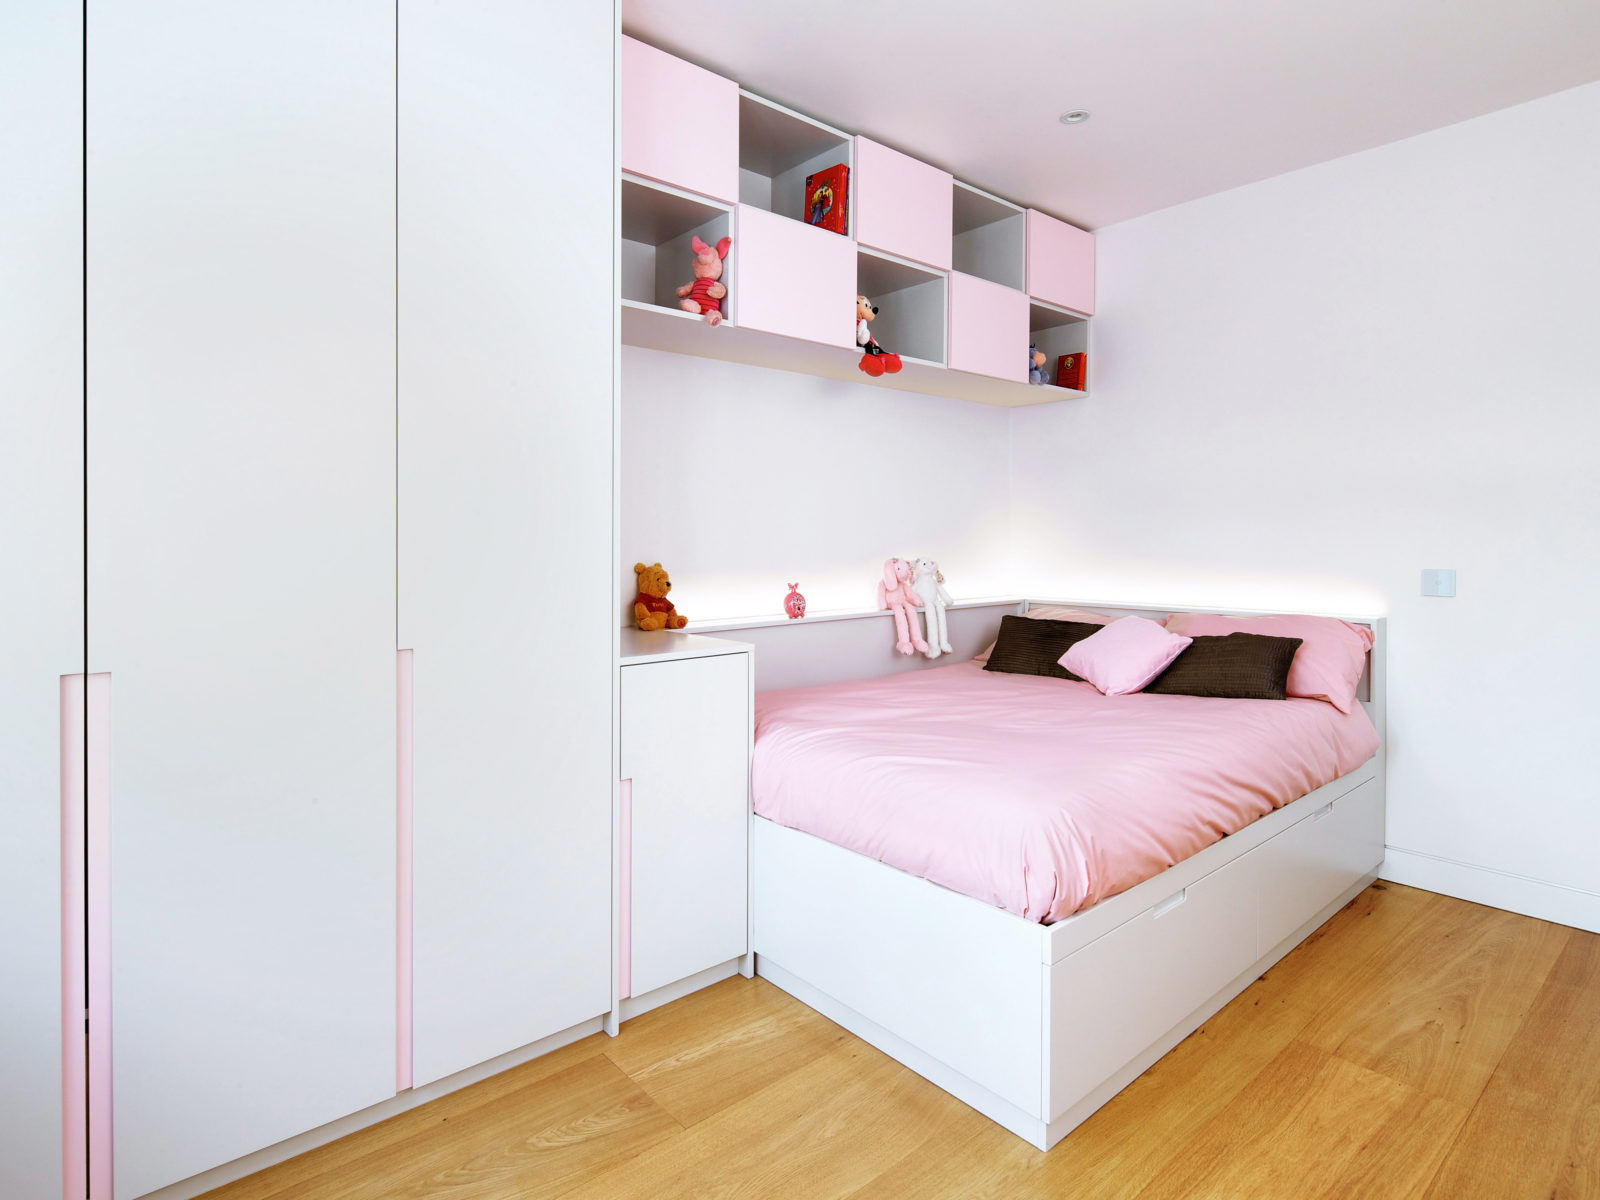 Built in handless wardrobe and bed with high level storage